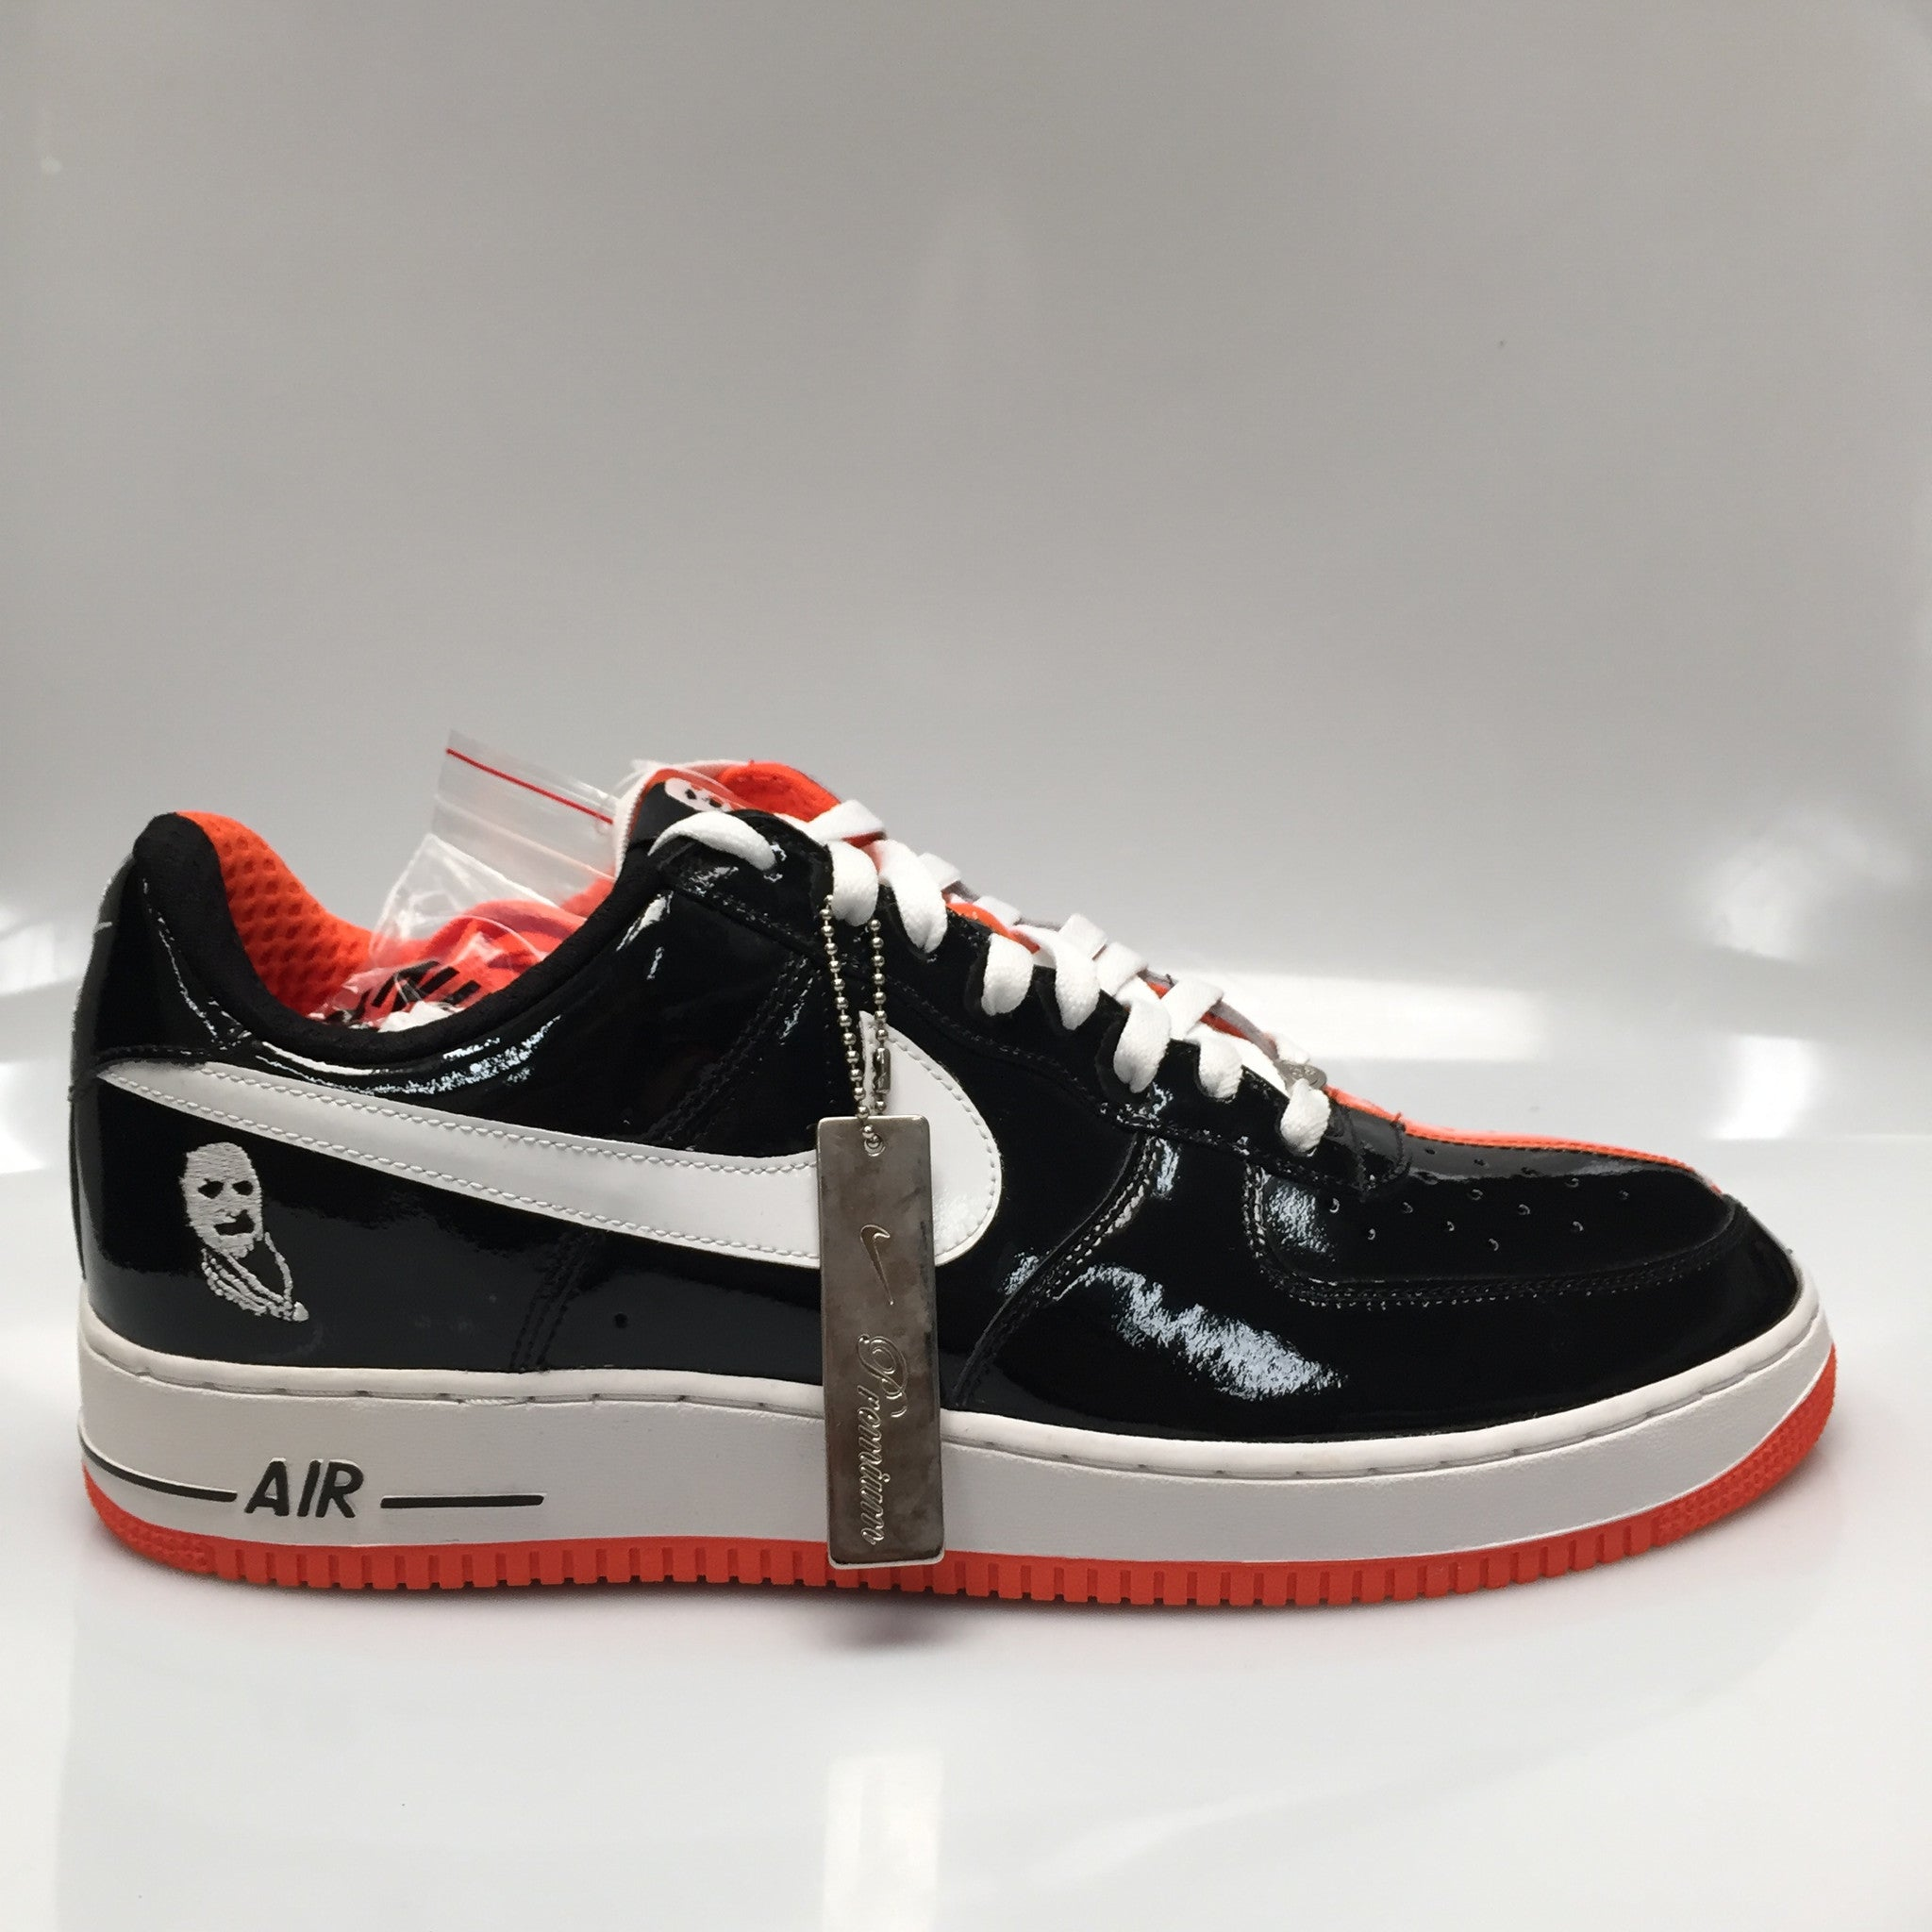 Nike Air Force 1 Low Size 14 DS